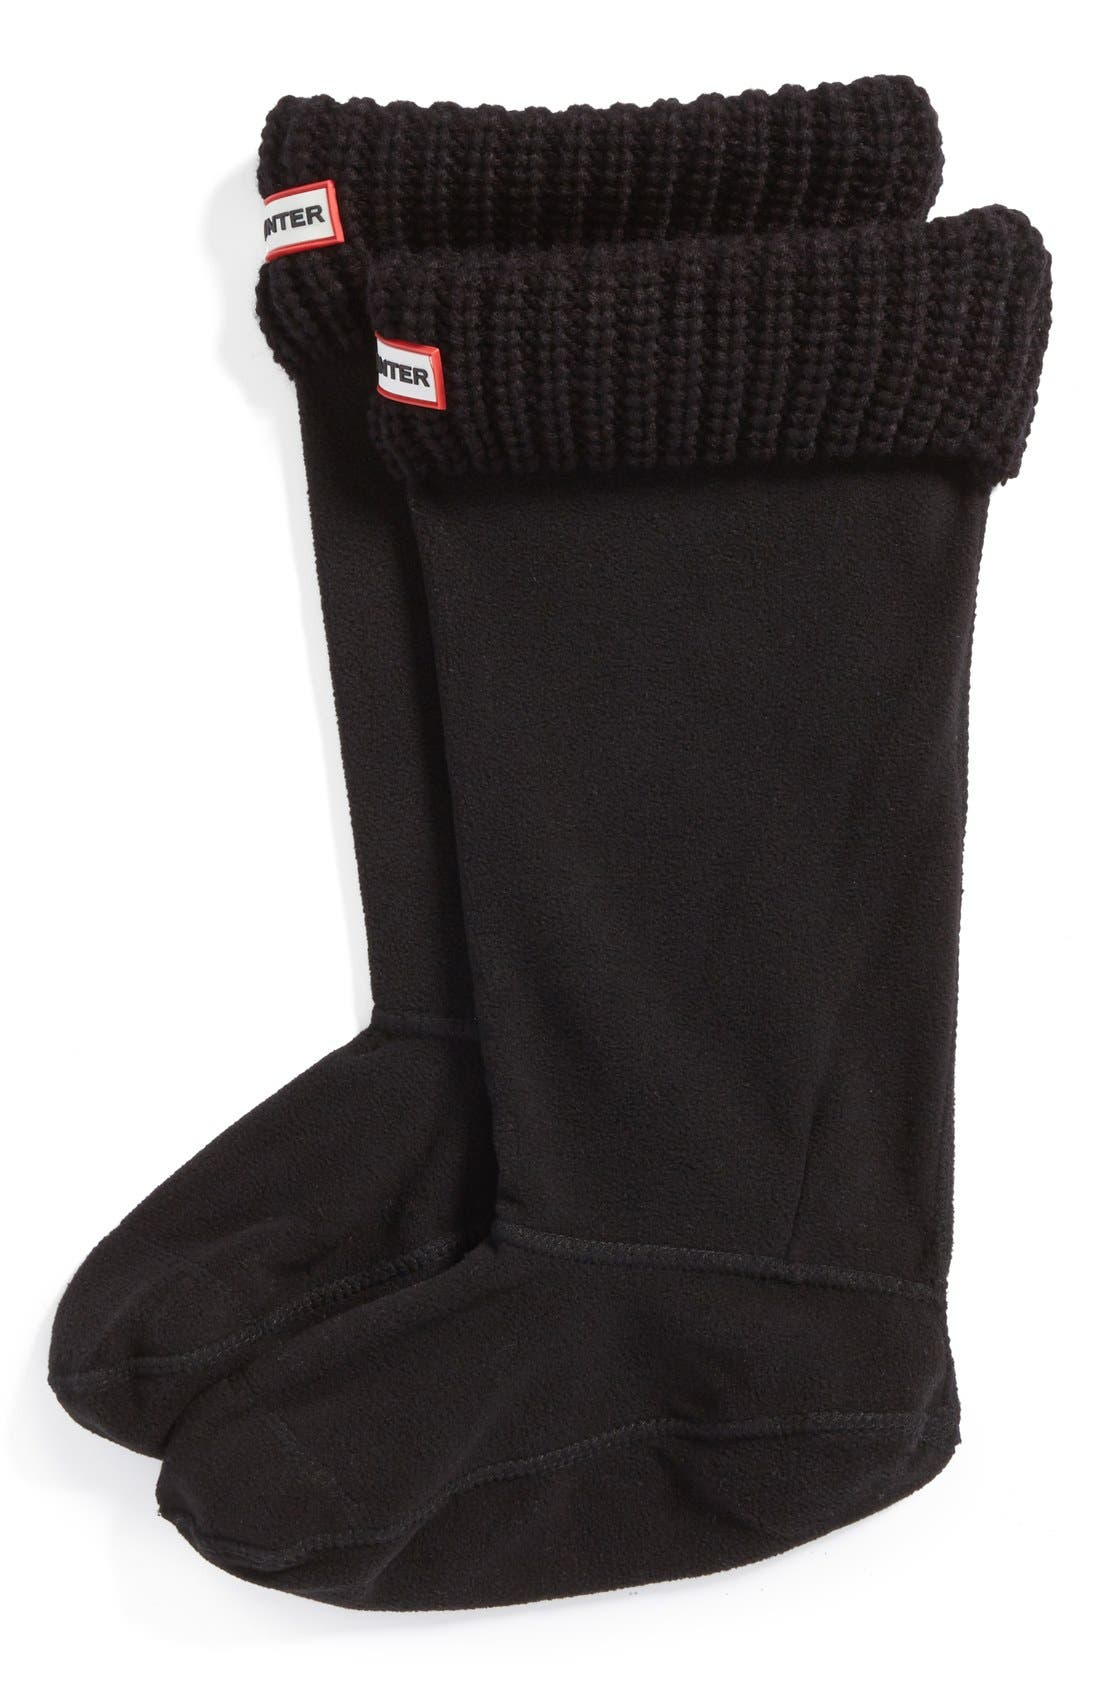 Hunter Tall Cardigan Knit Cuff Welly Boot Socks